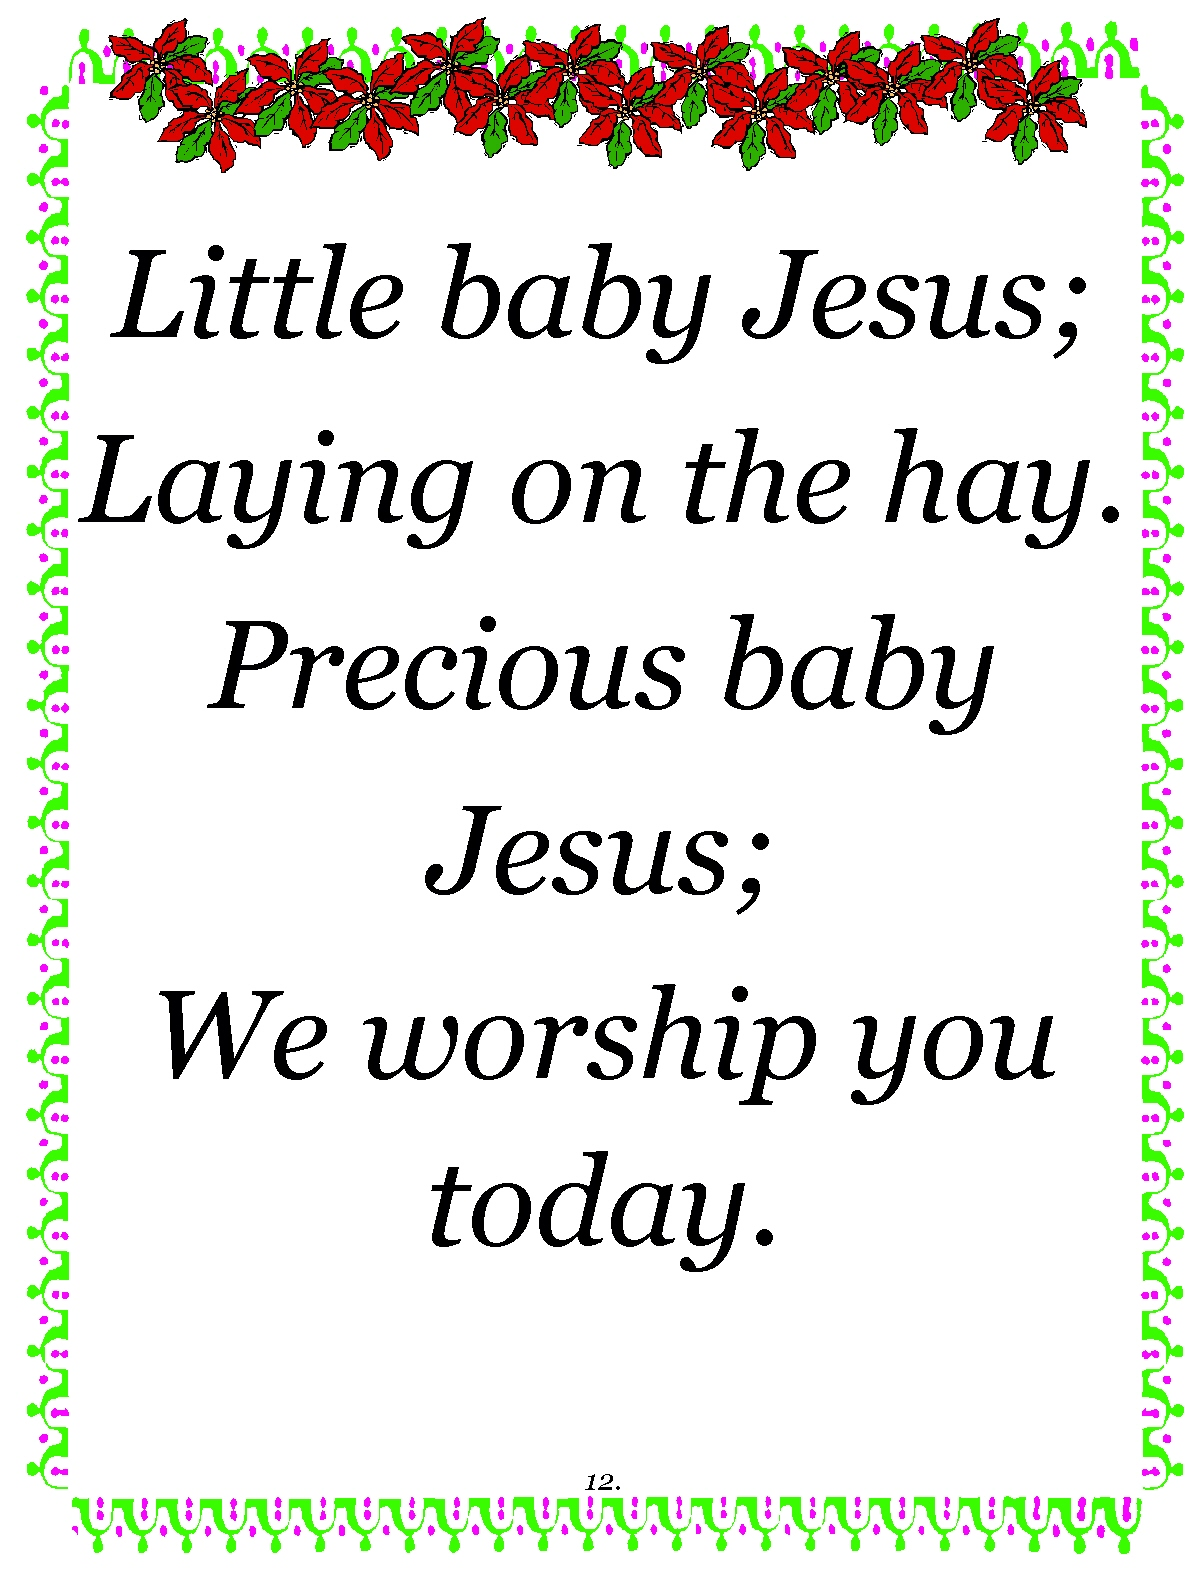 Short Christmas Poems For Church.Jesus Poems Images Reverse Search